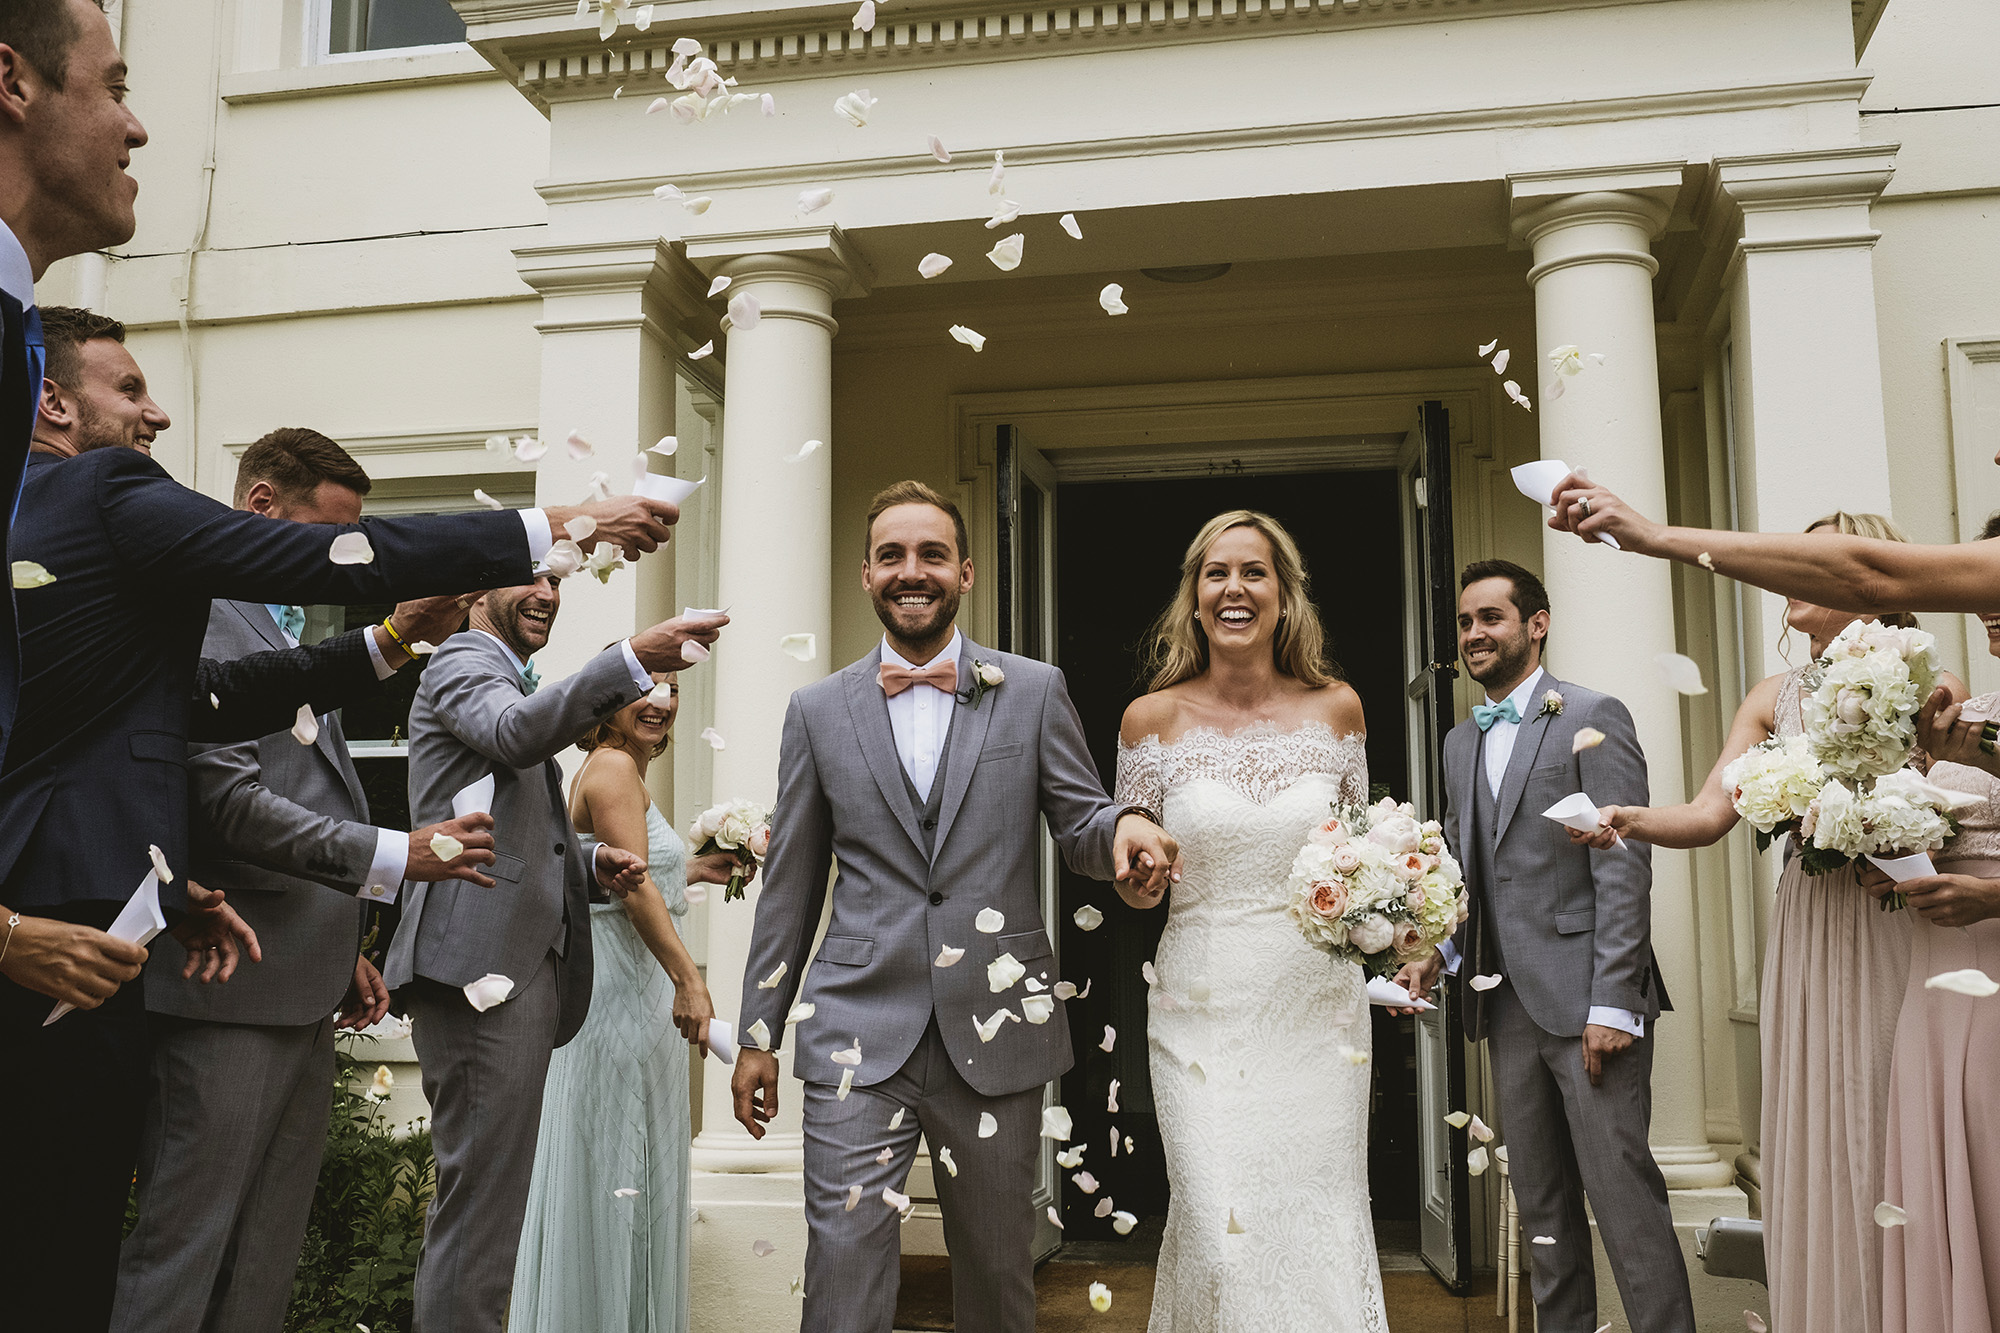 Just married couple leaves their ceremony at Morden Hall in London - photo by York Place Studios